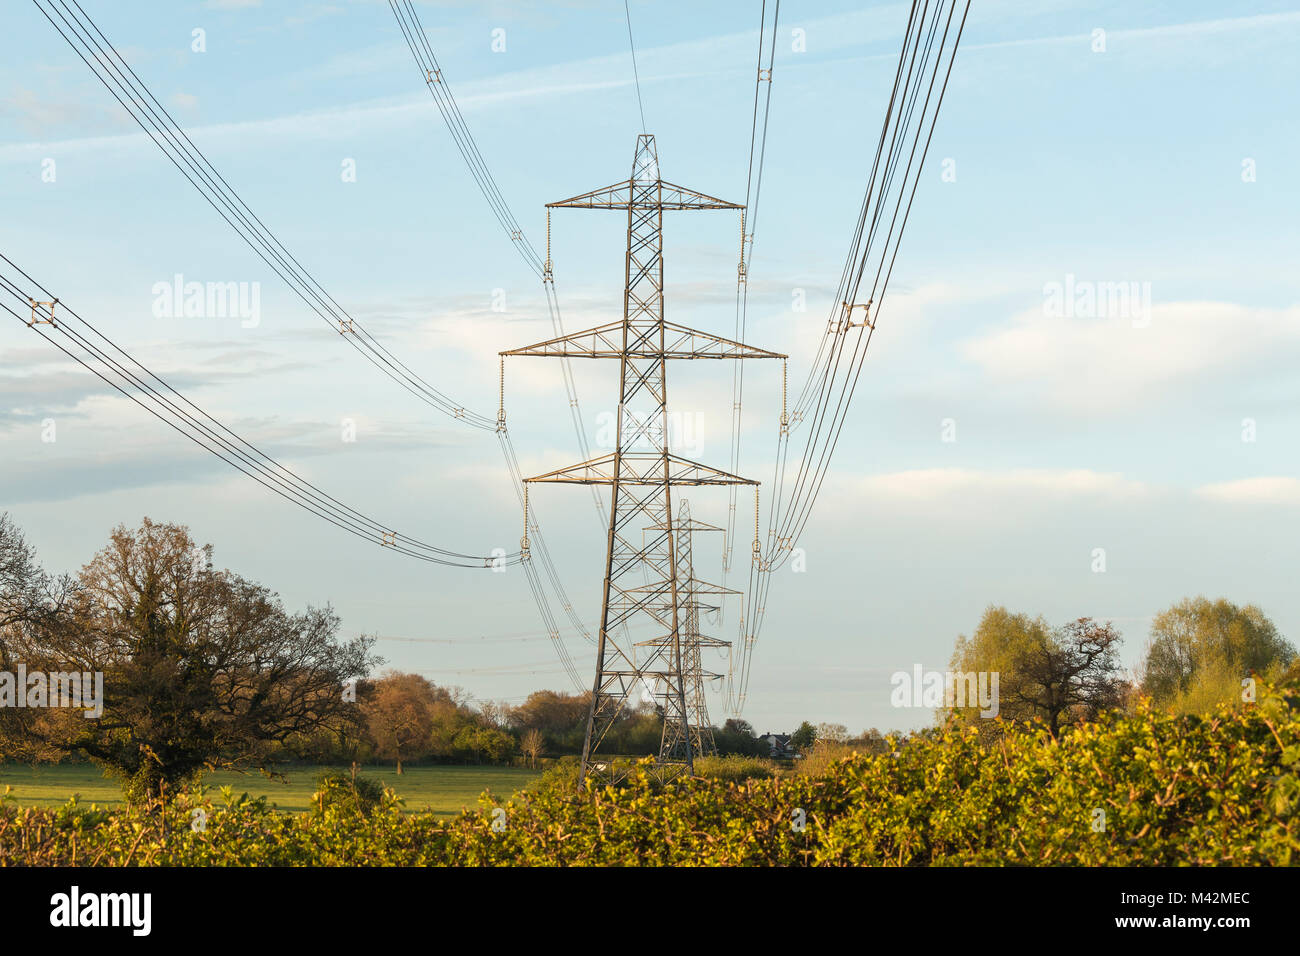 An evening shot of power lines in the countryside near Swithland, Leicestershire, England, UK - Stock Image